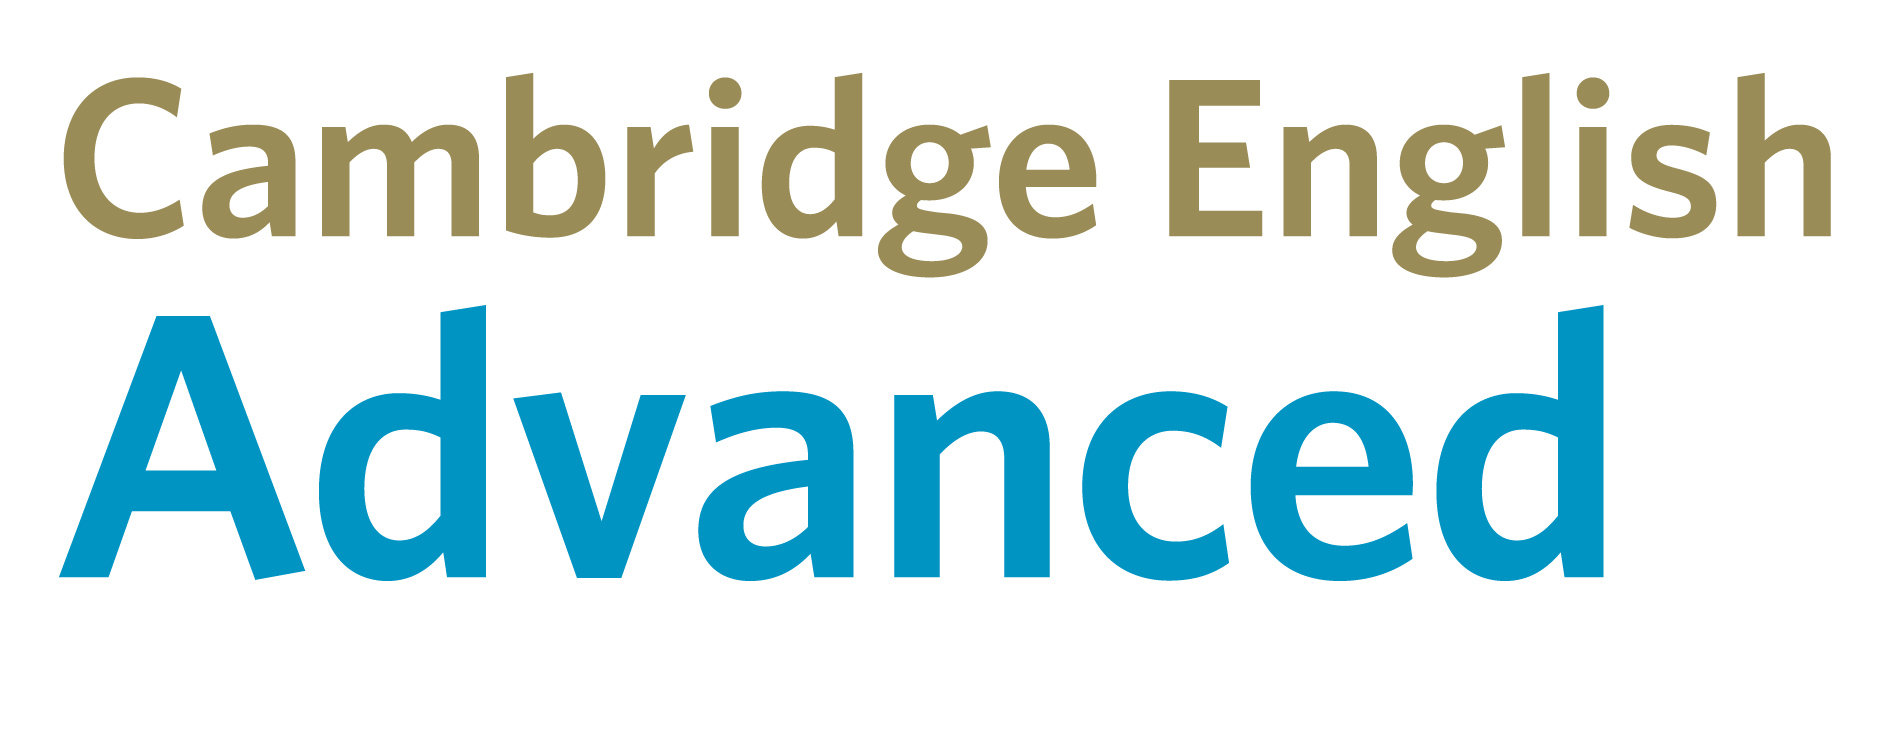 Cambridge English Advanced logo